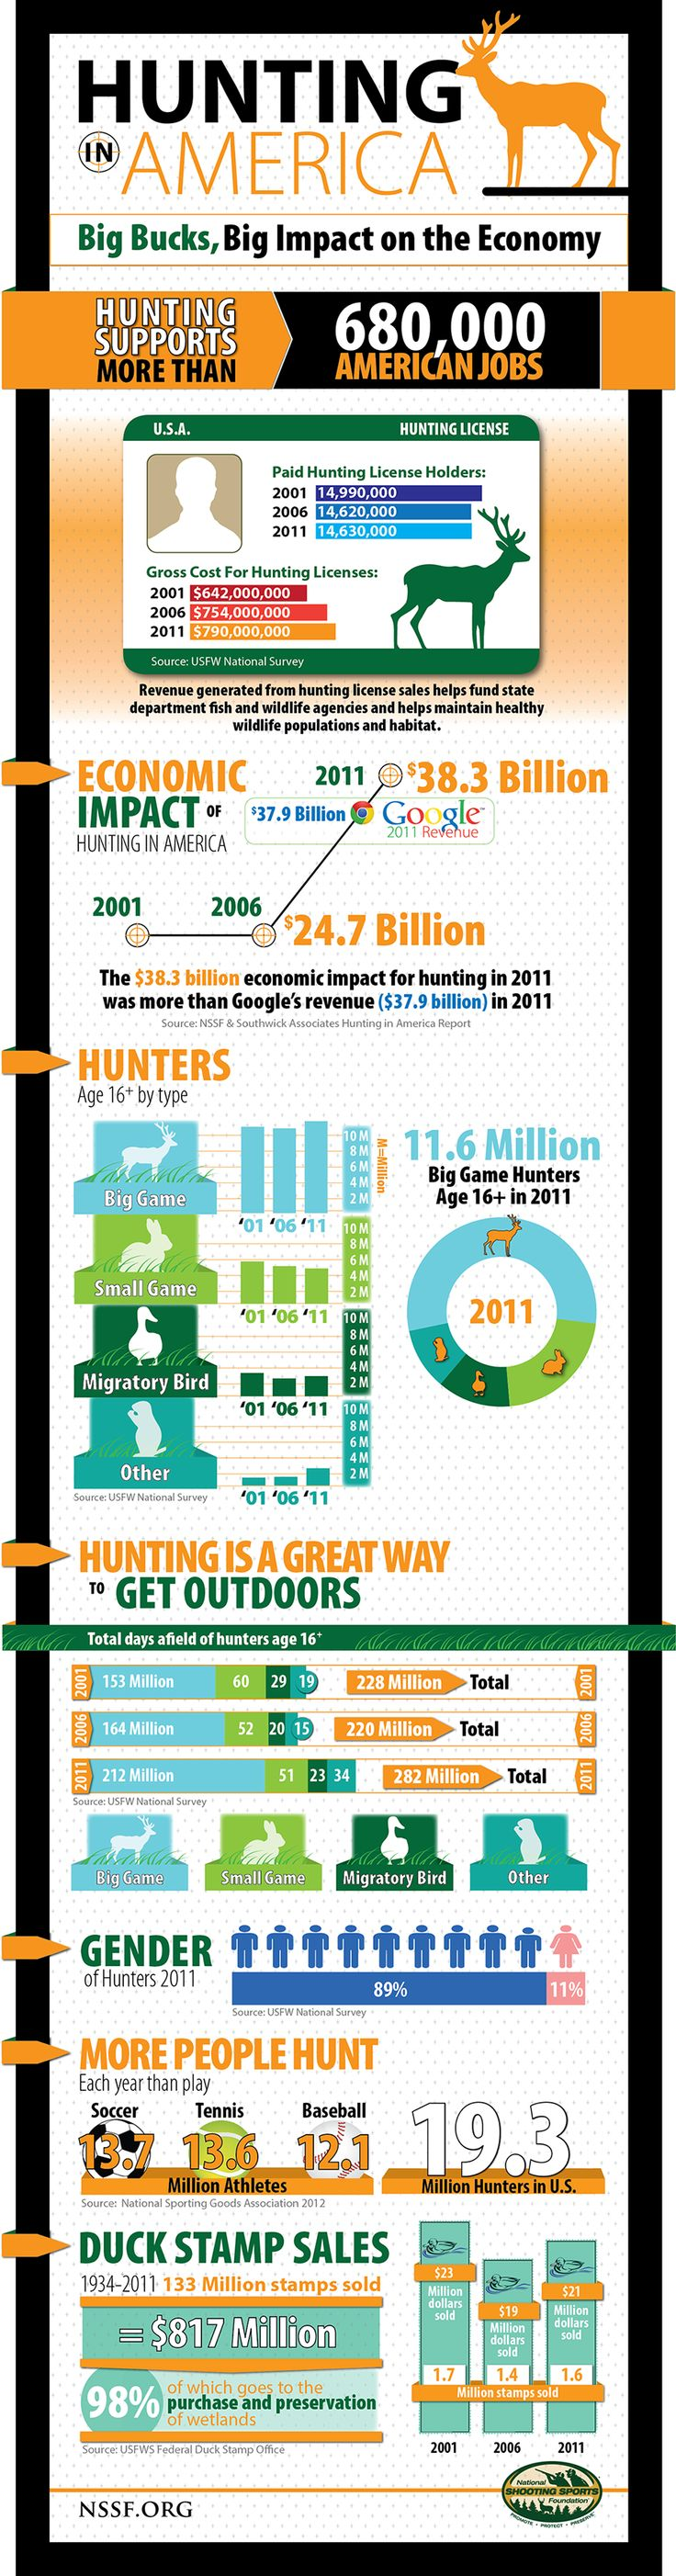 Hunting In America: Big Bucks, Big Impact On The Economy #Infographic #Hunting